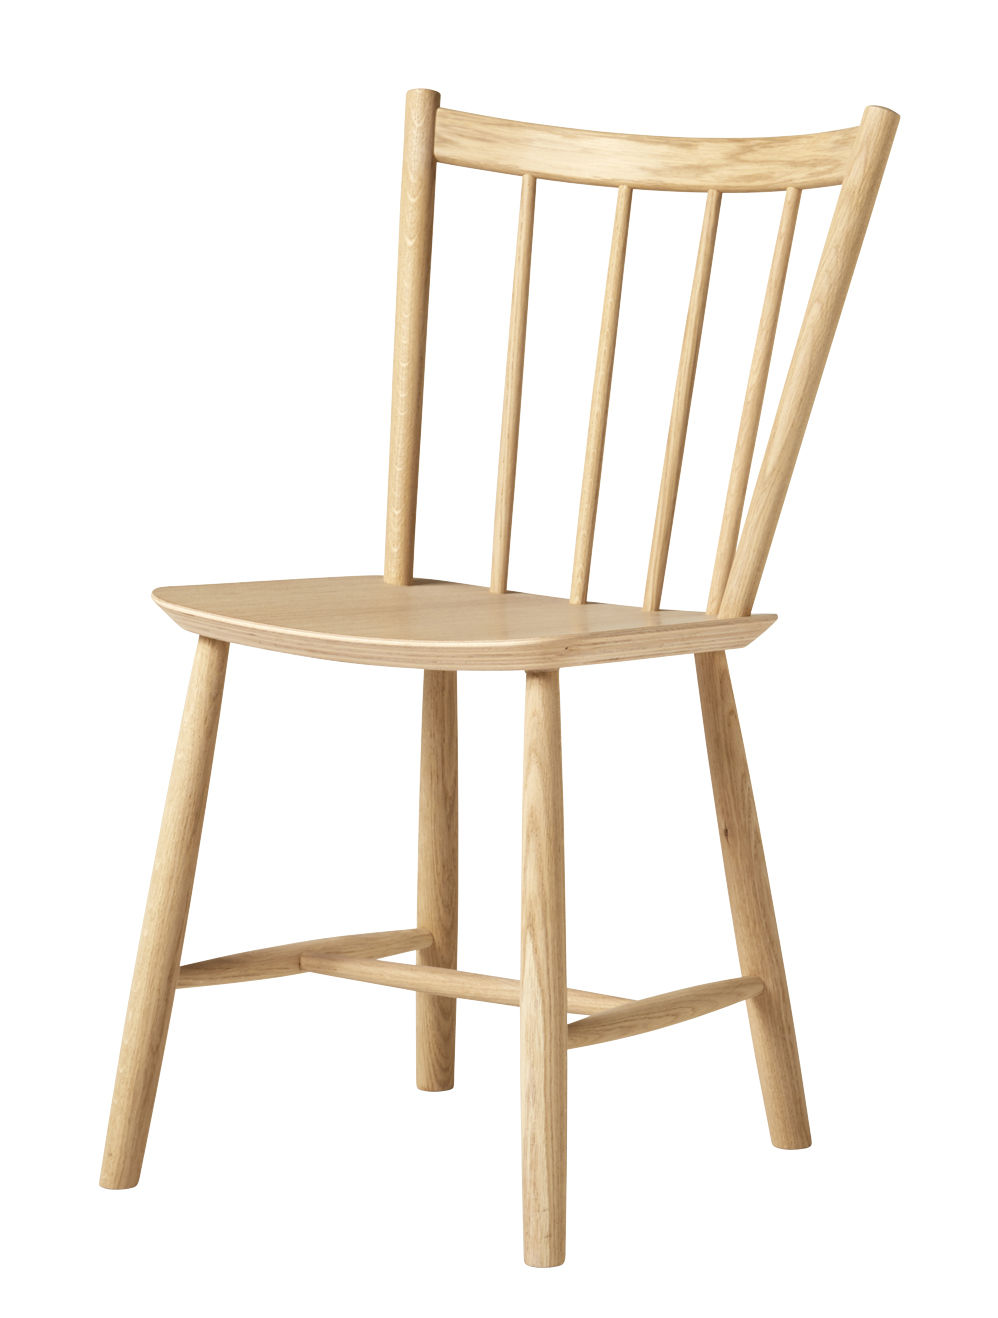 Furniture - Chairs - J41 Chair - / Wood by Hay - Matt lacquered oak - Lacquered oak